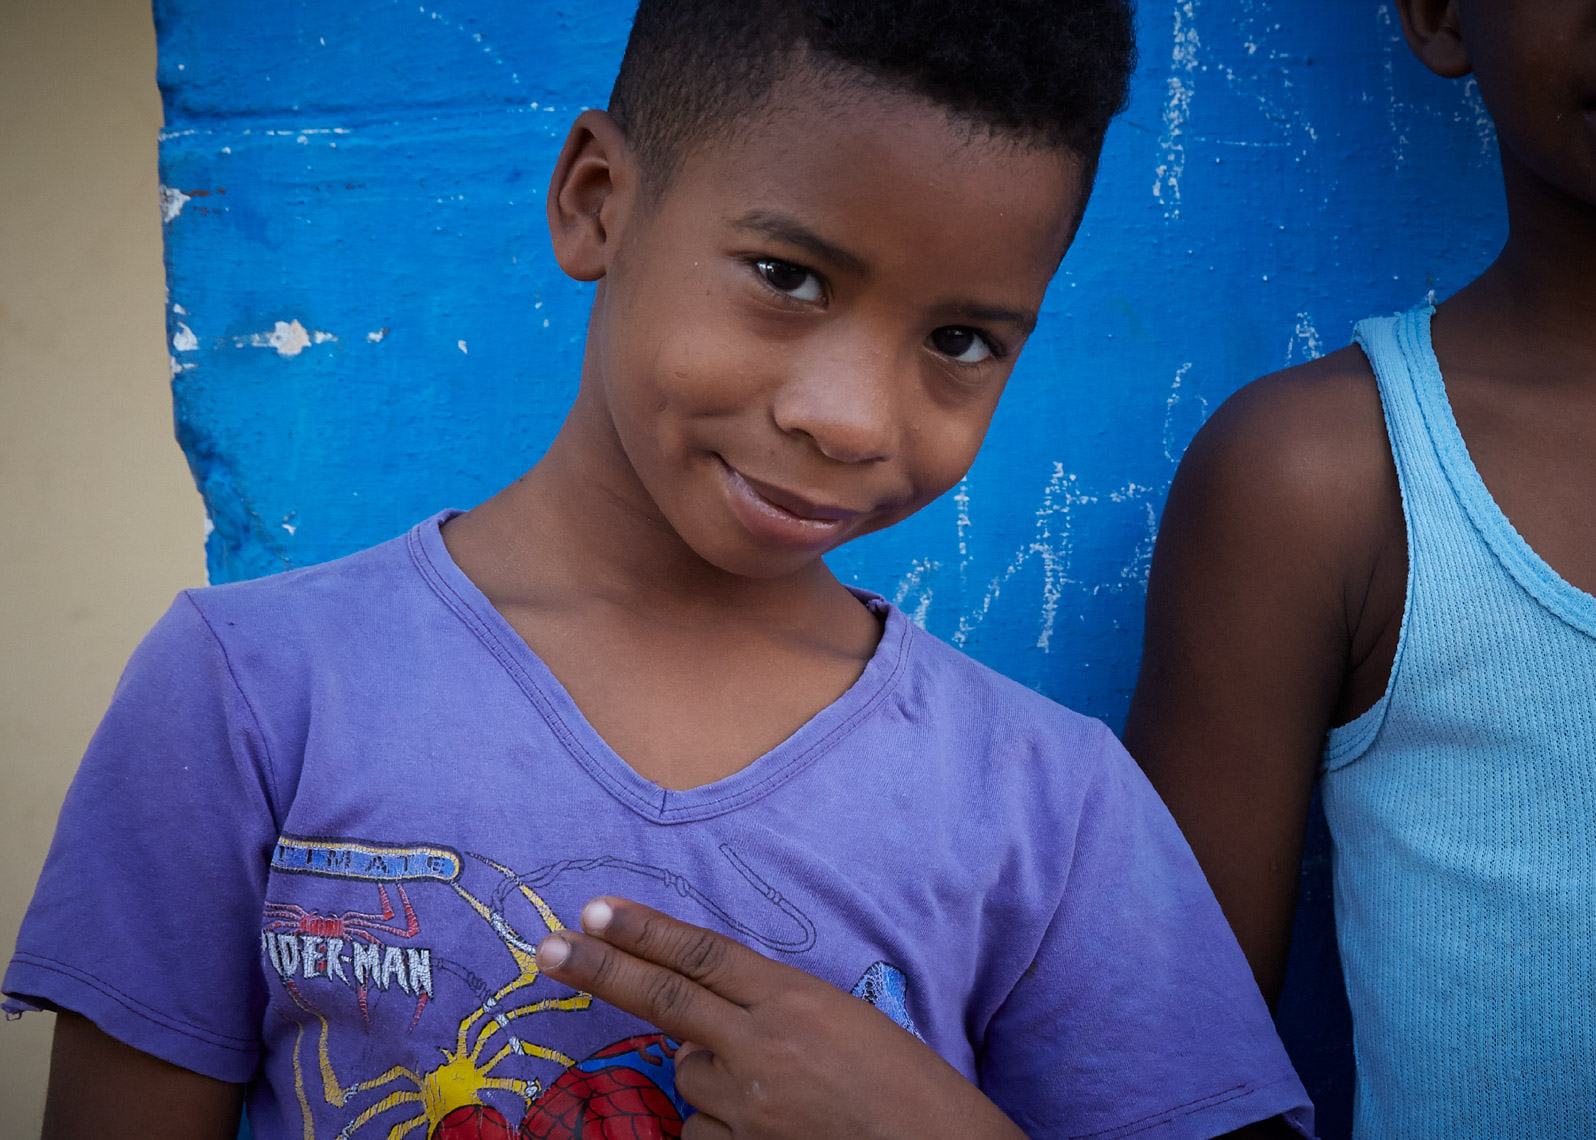 young boy with purple shirt and blue wall looking into camera holding up peace sign